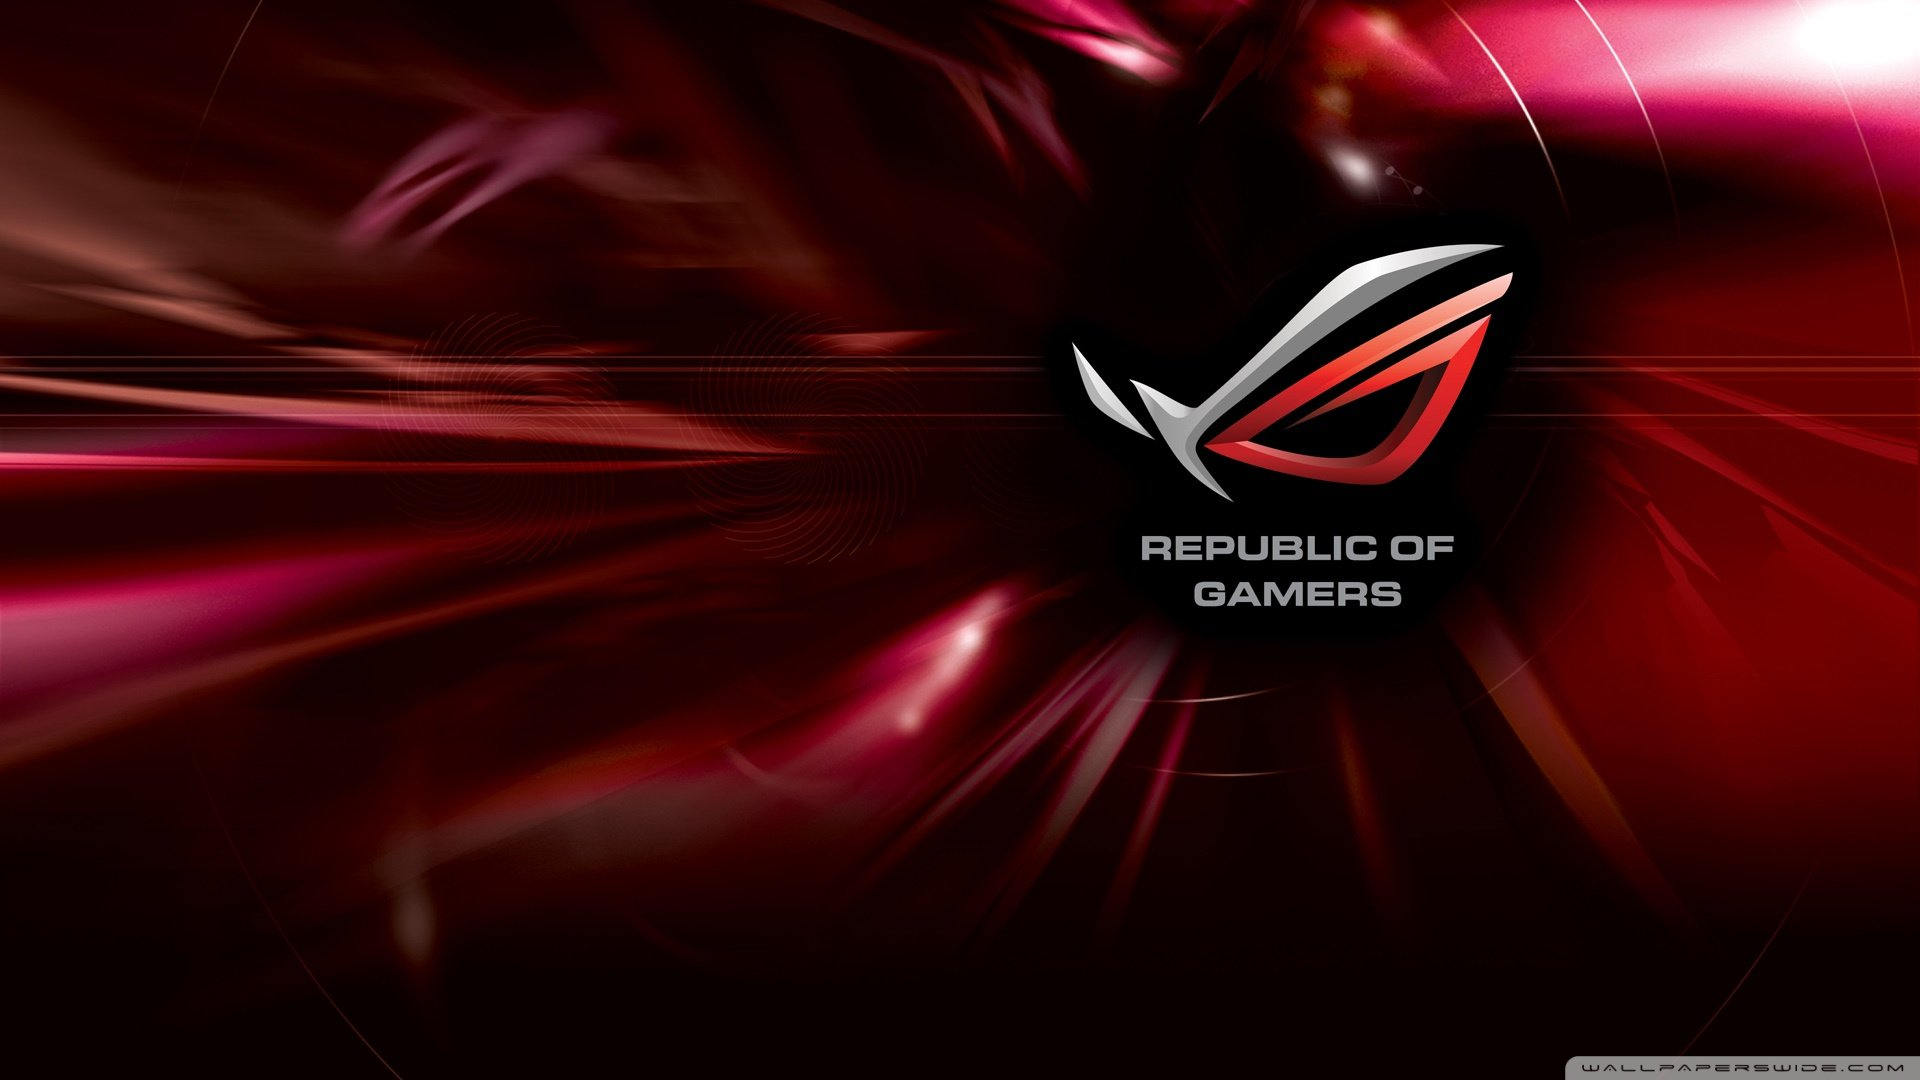 38 ] ASUS ROG Wallpaper On WallpaperSafari